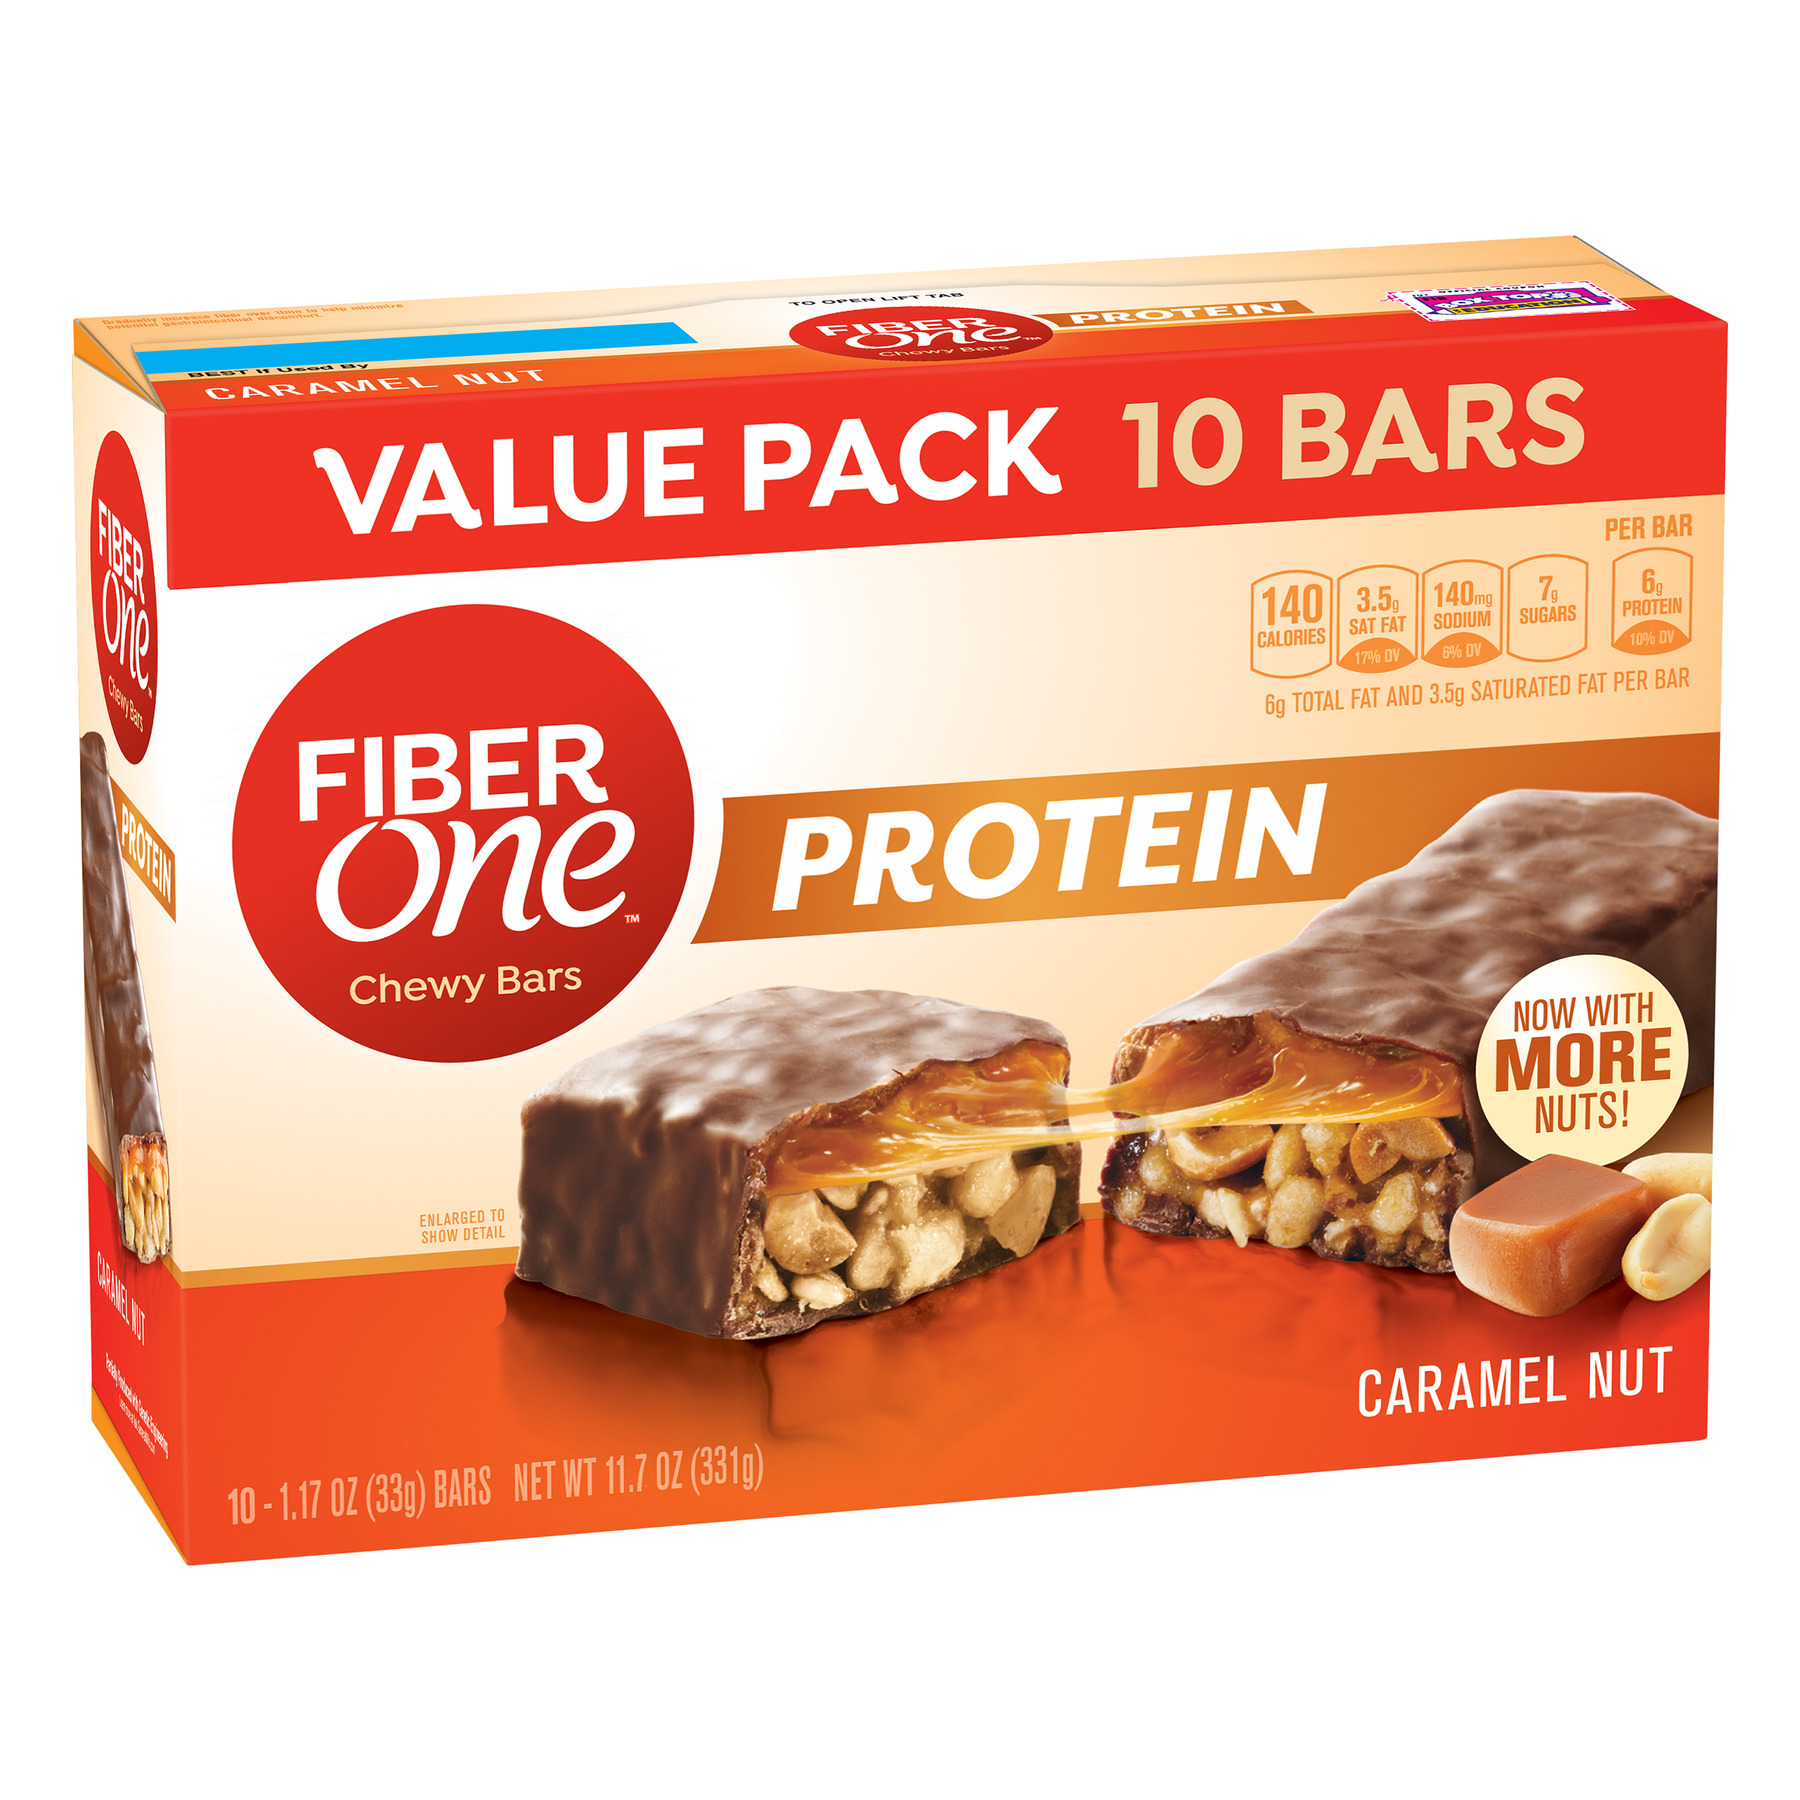 Fiber One Protein Chewy Bar, Caramel Nut, 6g Protein, 10 Ct